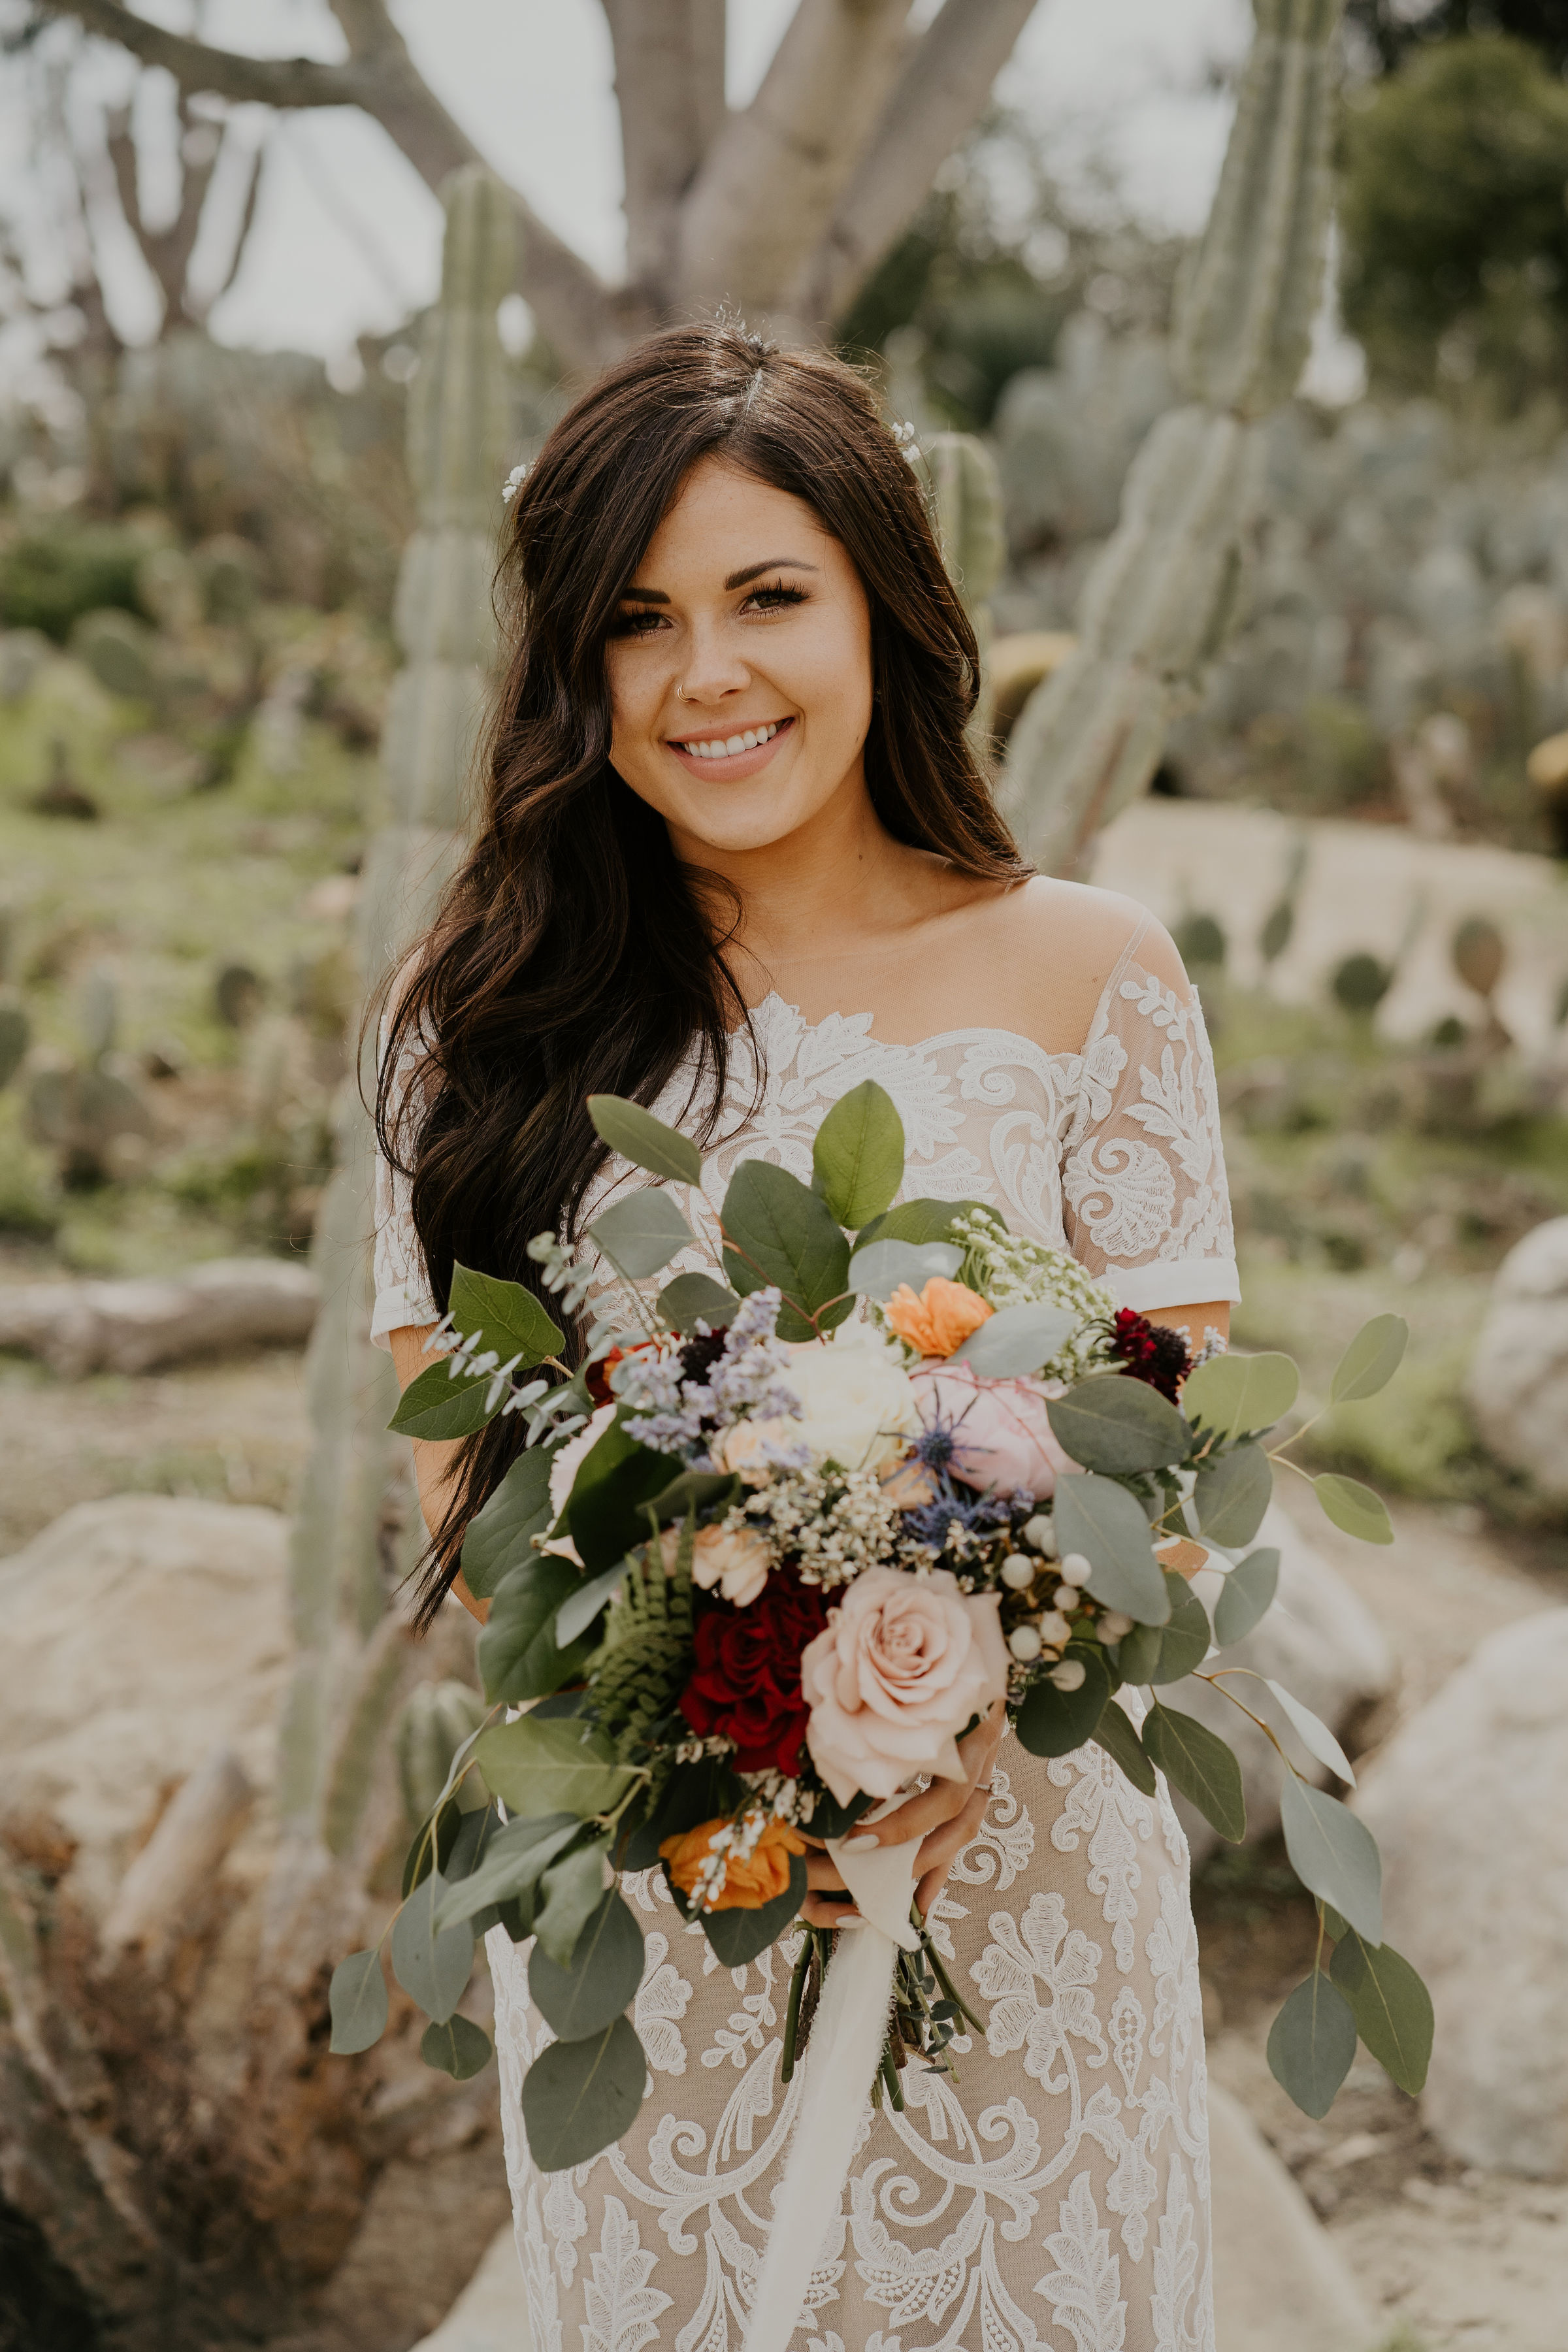 Morgan and Emma - Wedding florals - Floral design